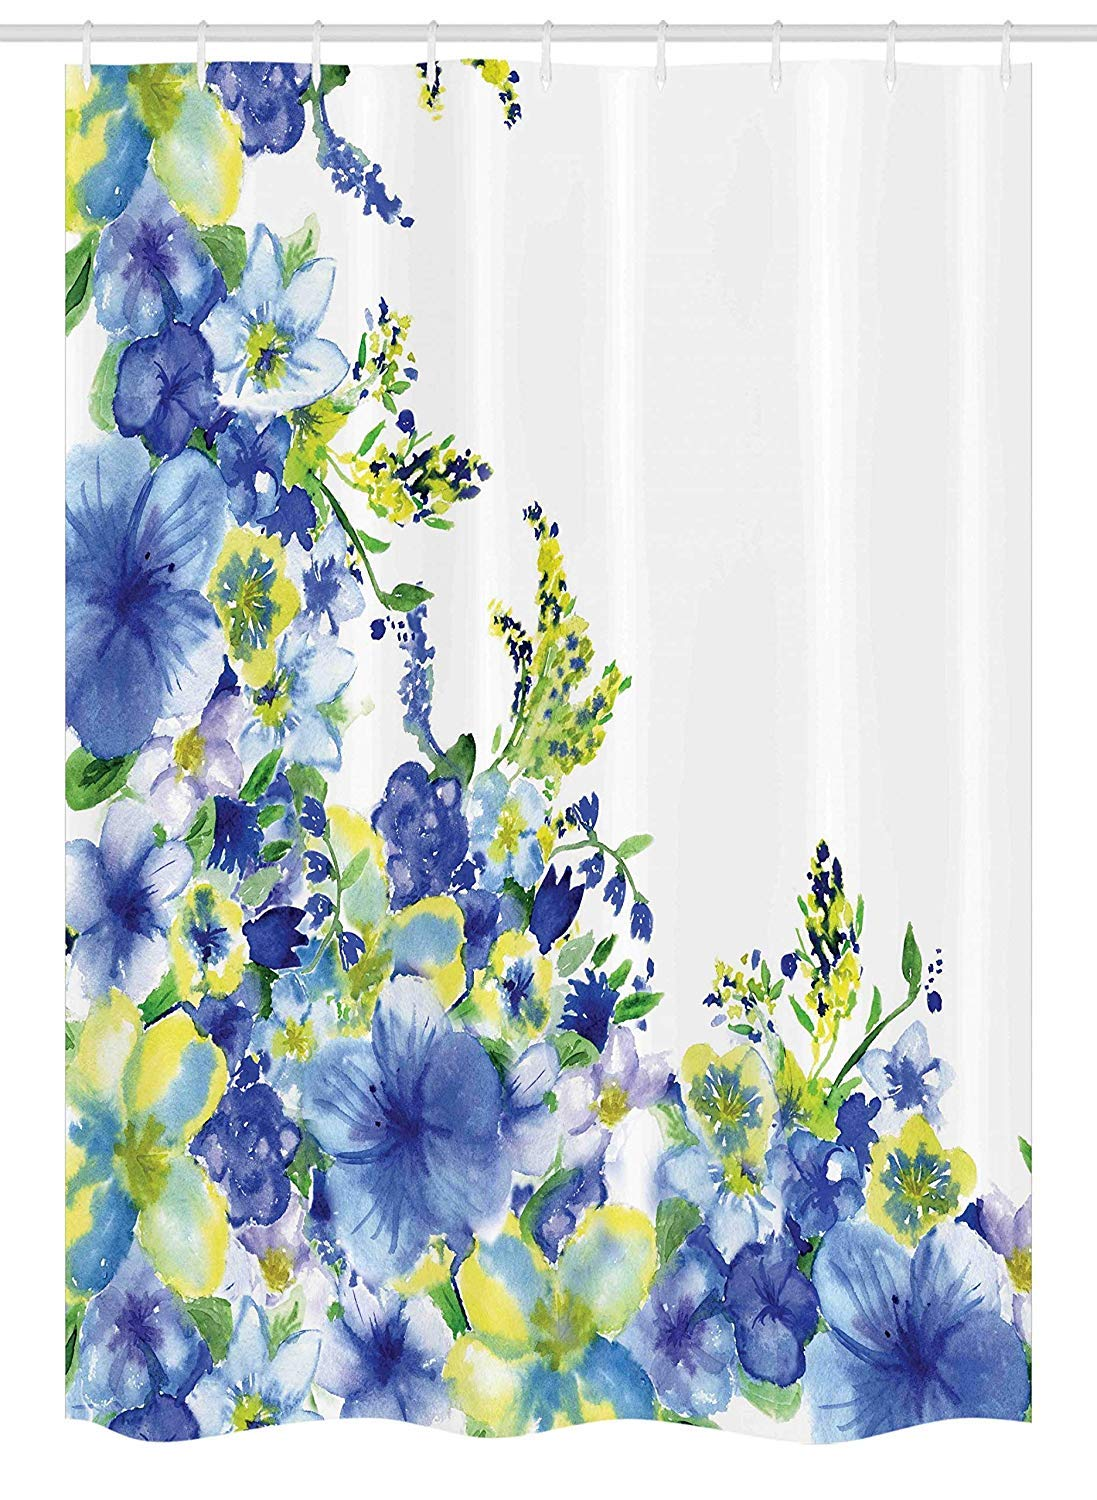 Printing Watercolor Flower House Decor Stall Shower Curtain, Motley Floret Motifs with Splash Anemone Iris Revival Theme, Fabric Polyester Waterproof 12 Stainless Steel Hook, 72 x 84 Inches